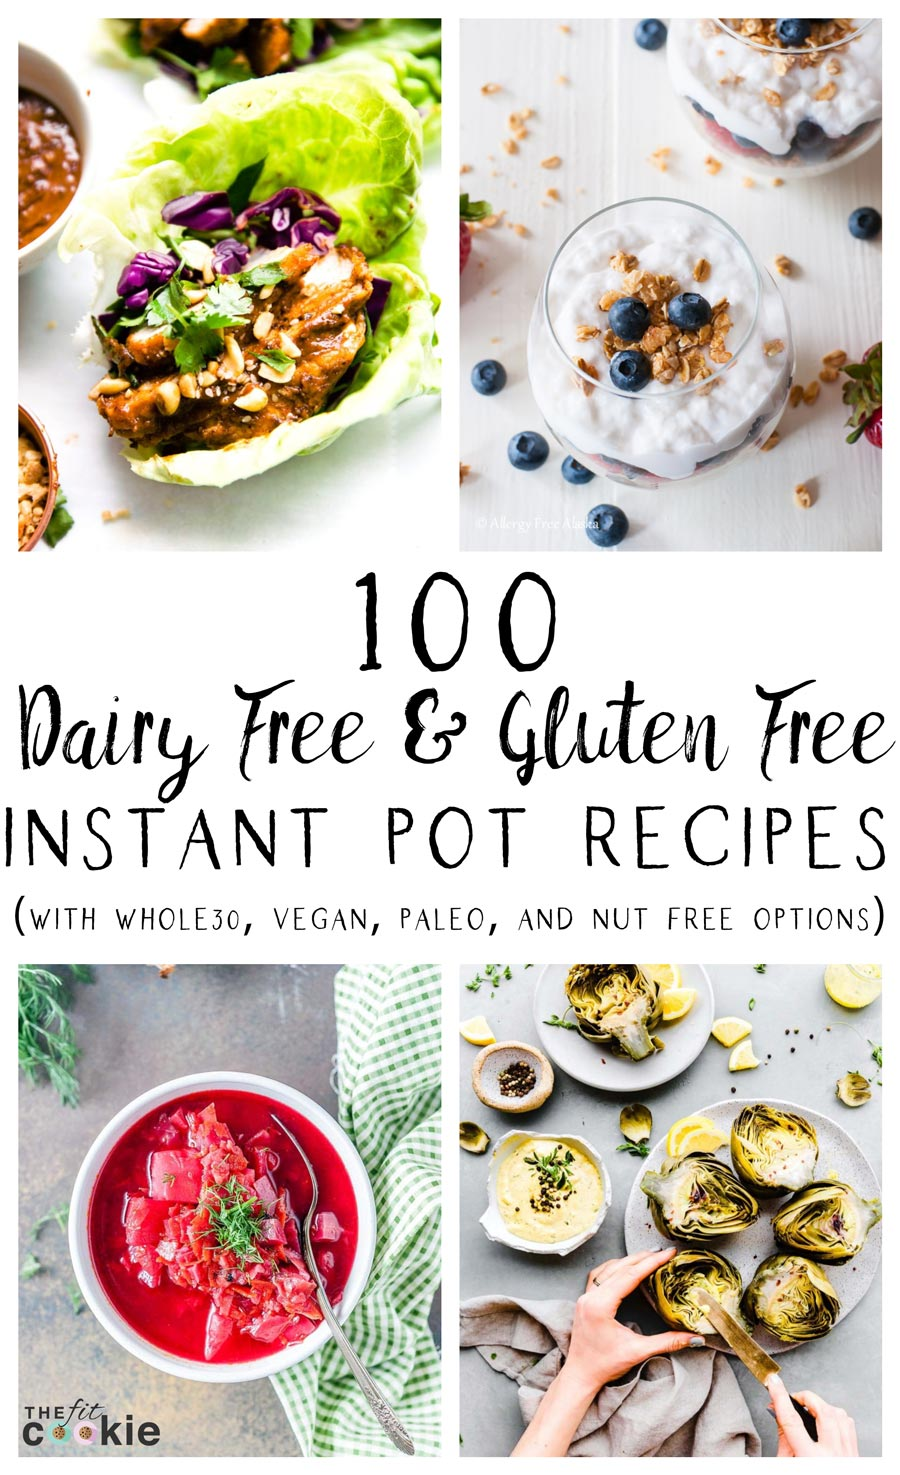 Image collage of dairy free, gluten free, and allergy friendly instant pot recipes